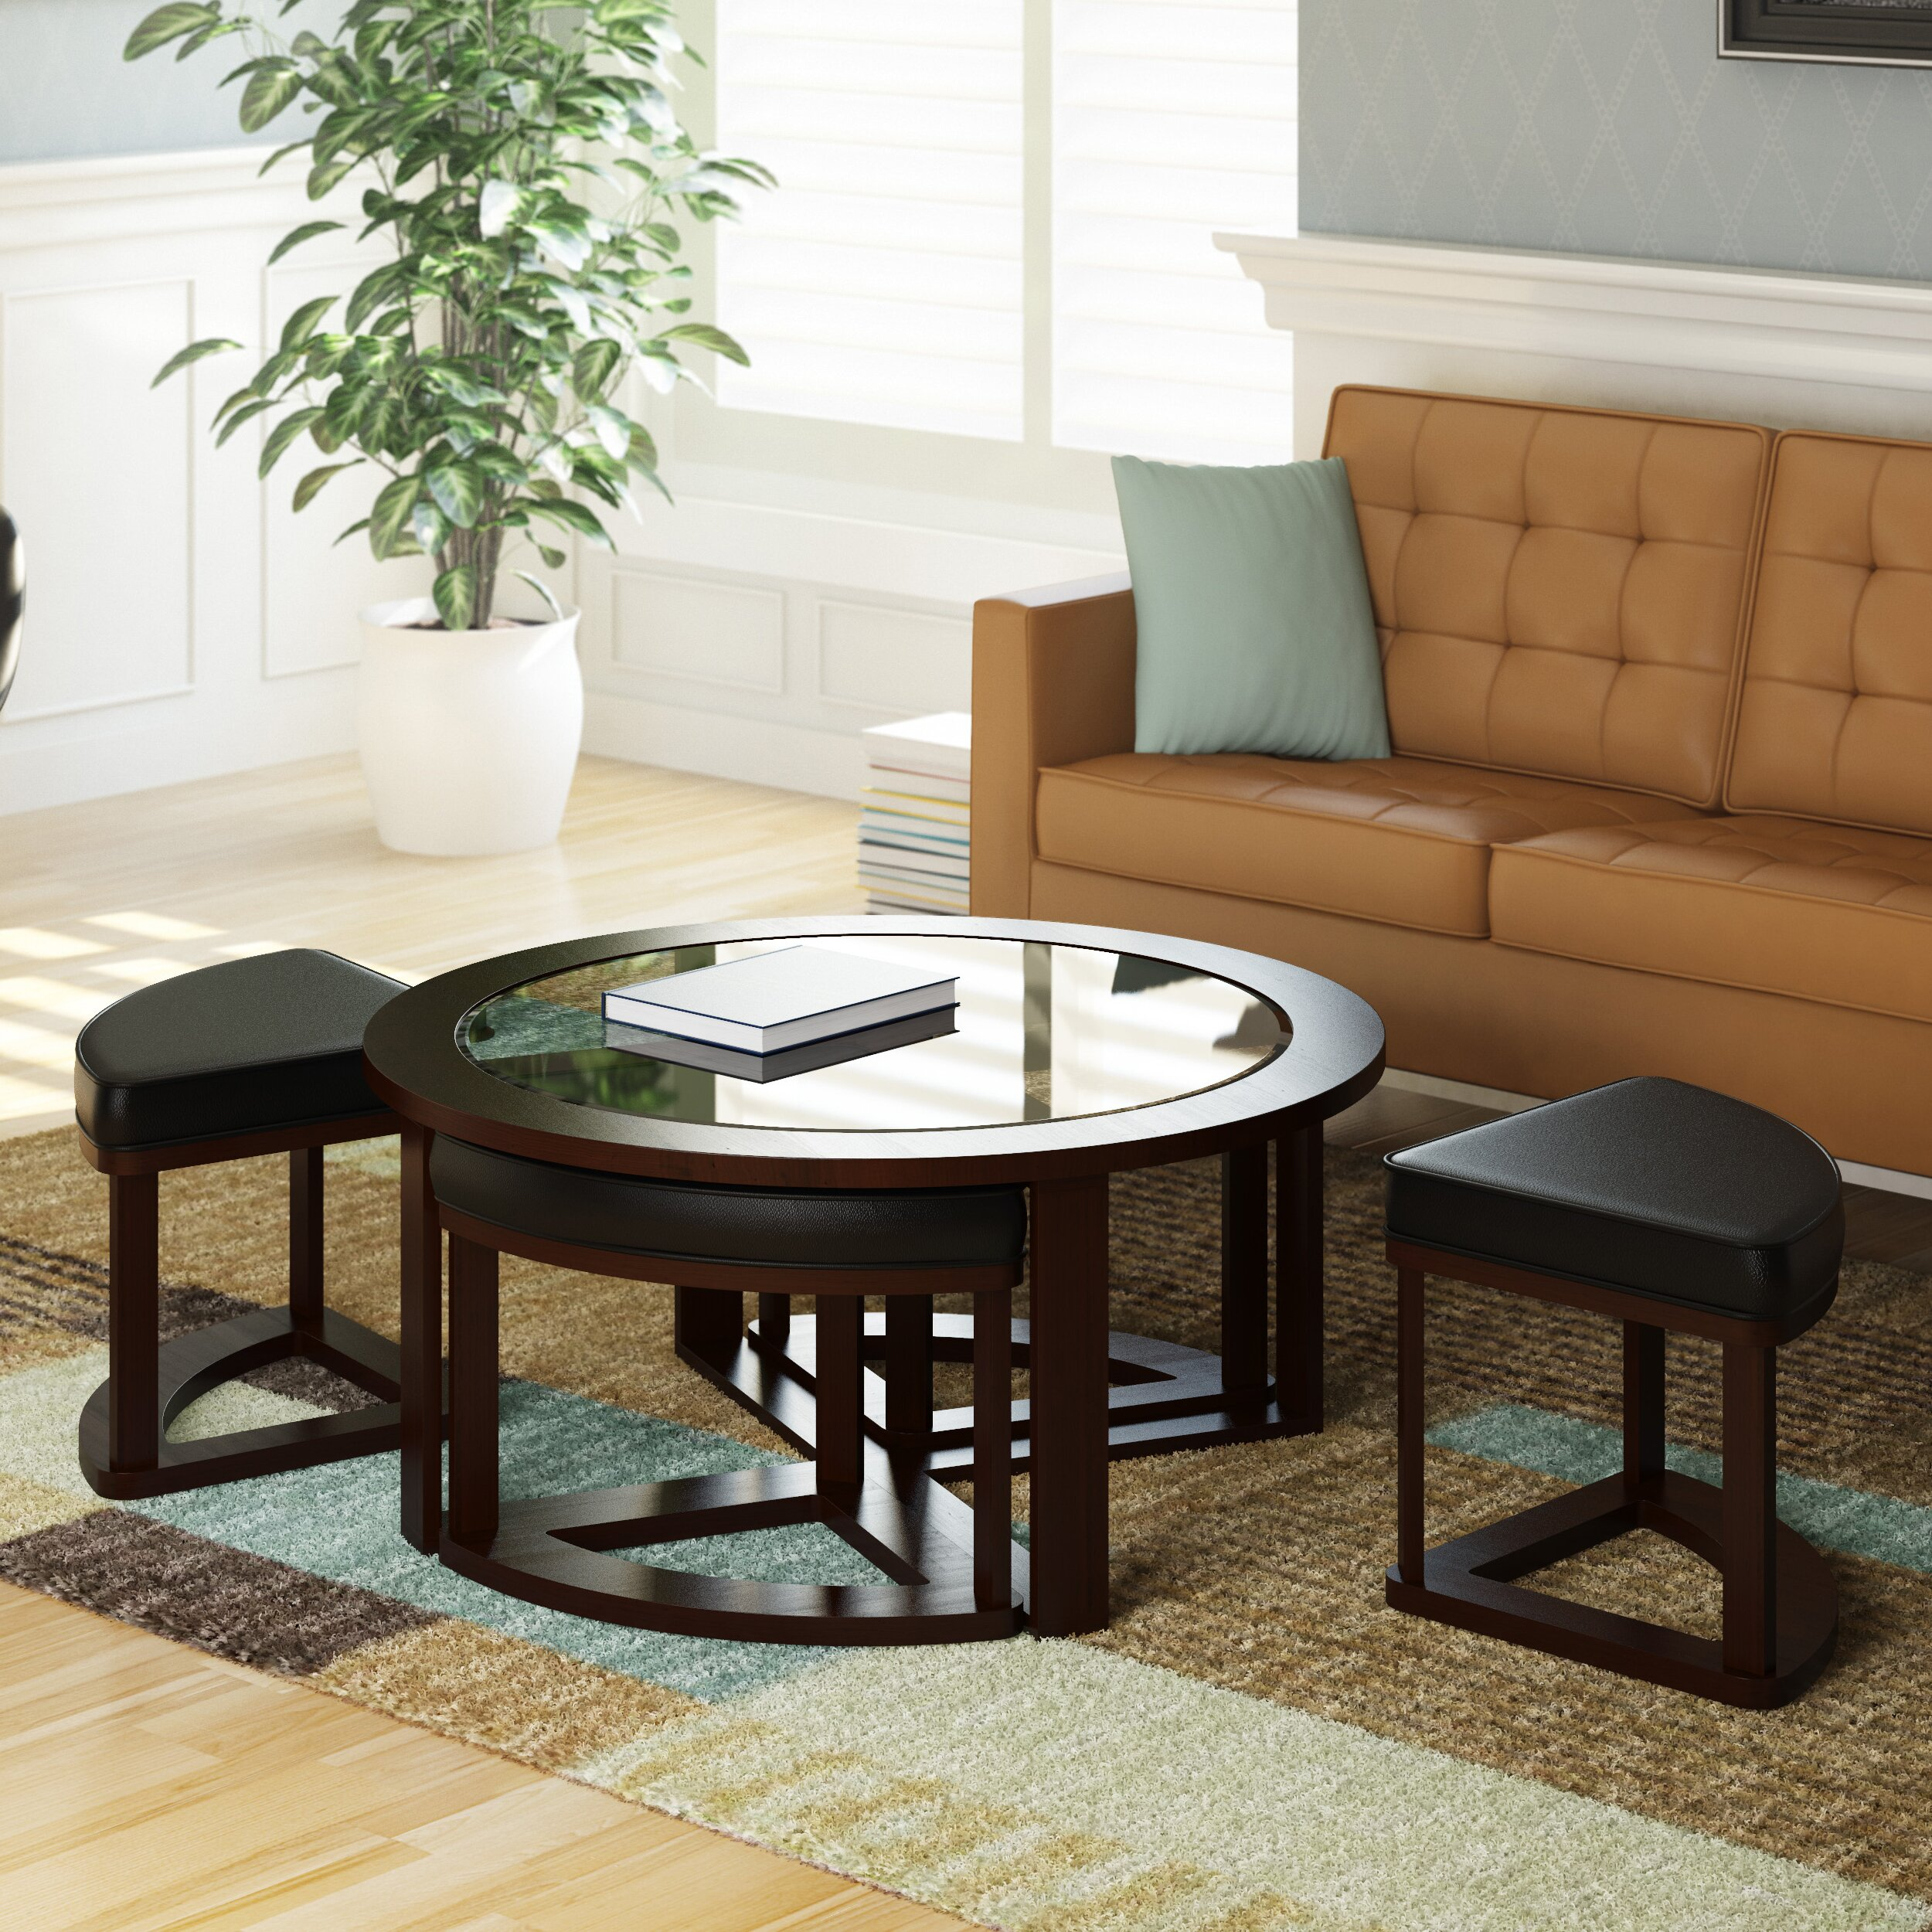 DCOR Design Belgrove Coffee Table With 4 Stools & Reviews